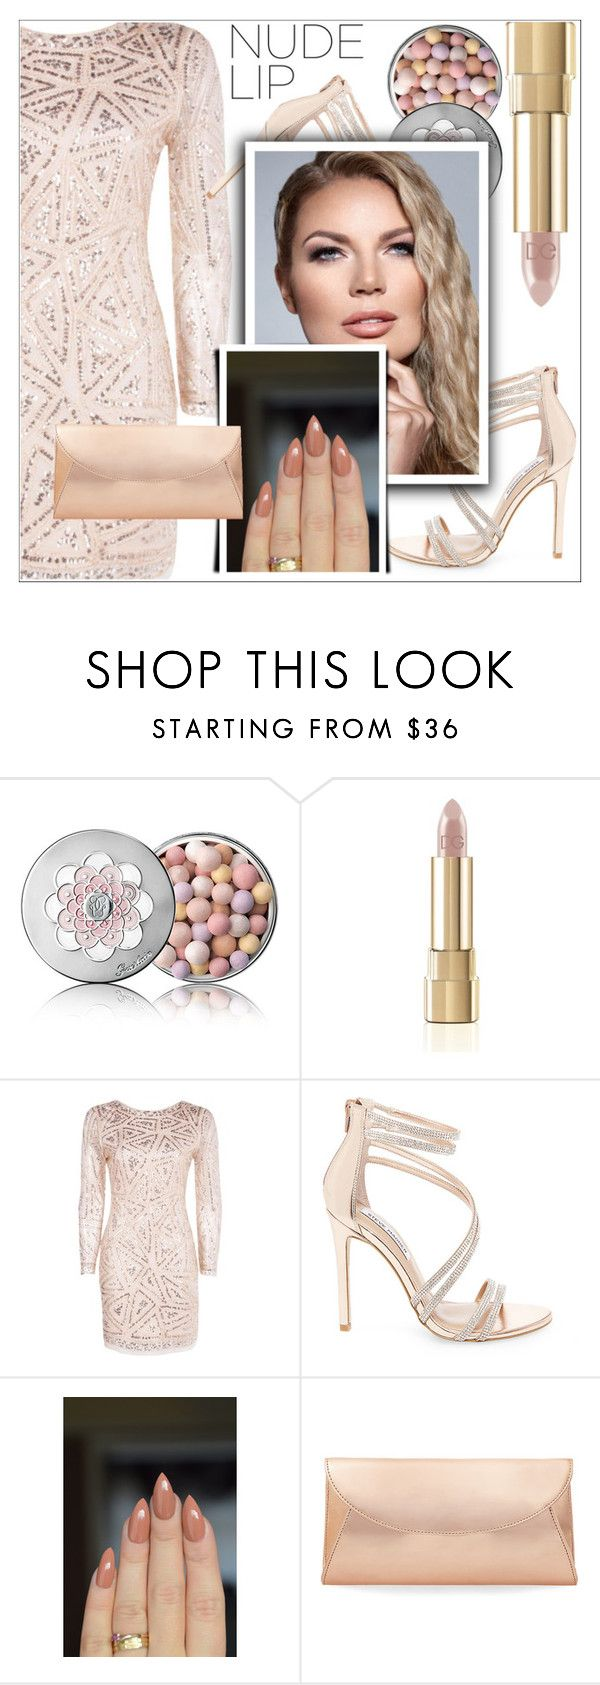 """PERFECT NUDE LIP"" by shoaleh-nia ❤ liked on Polyvore featuring Guerlain, Dolce&Gabbana, Boohoo and Steve Madden"